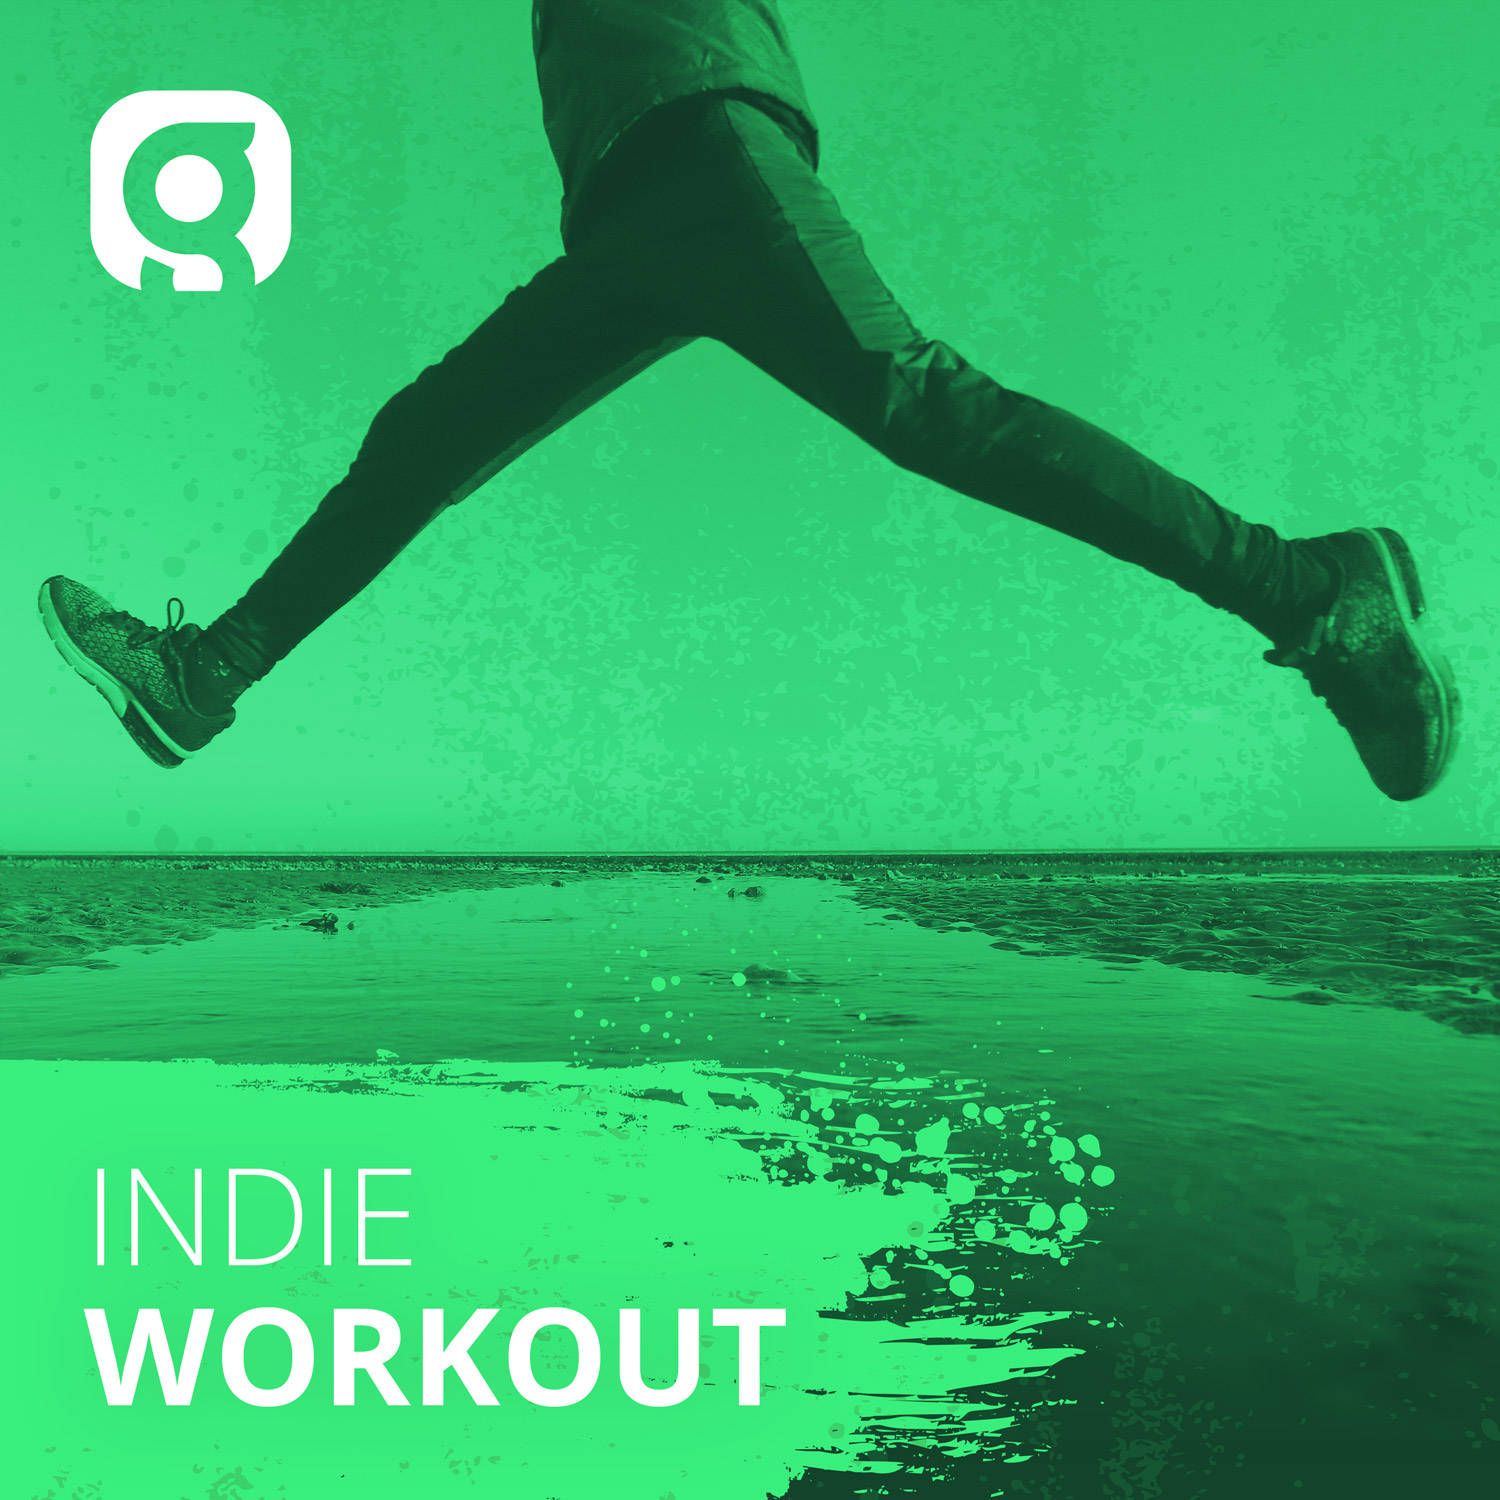 Indie Workout image